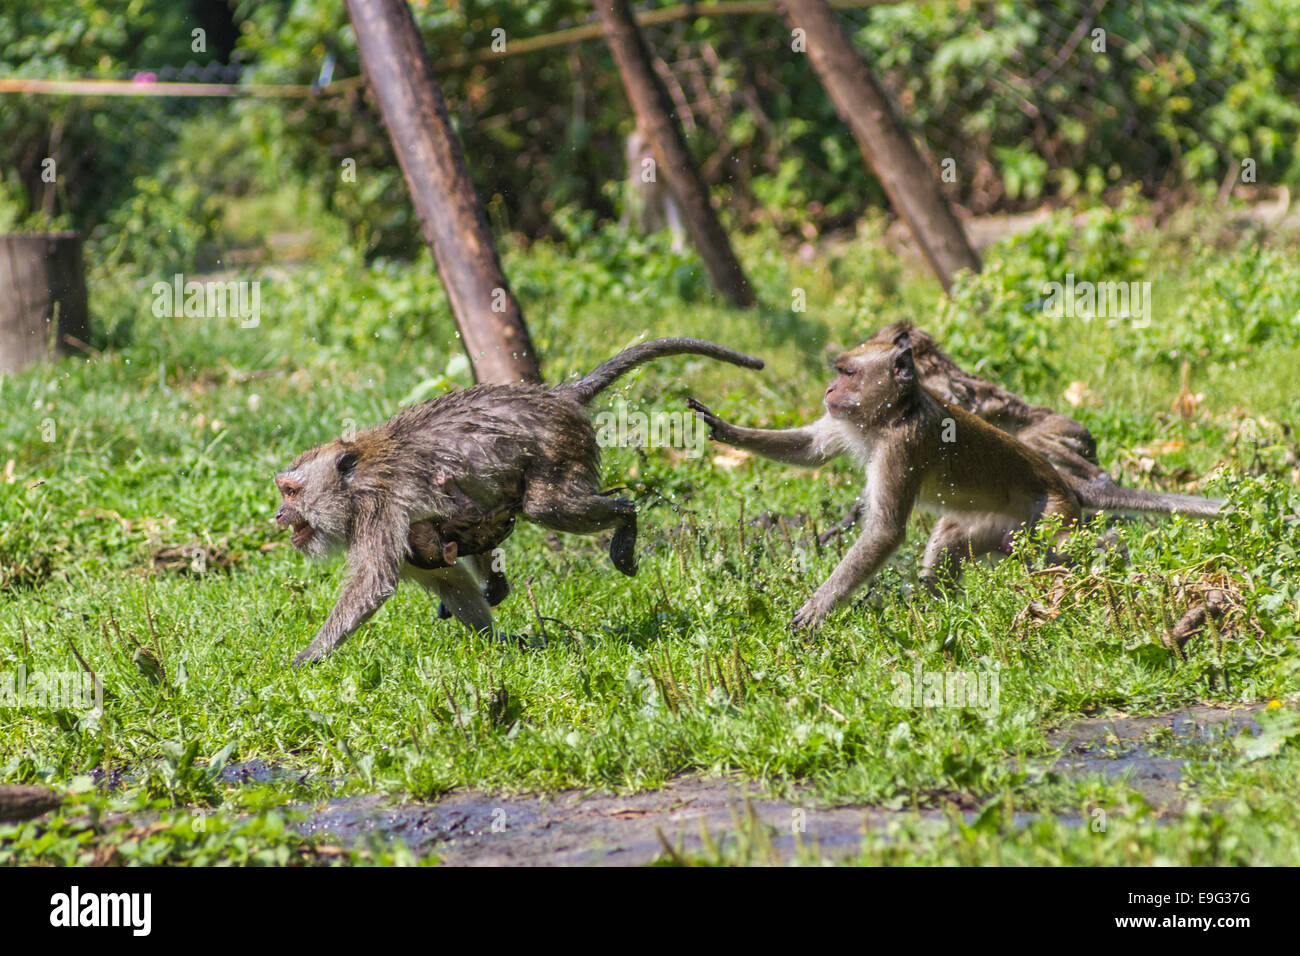 Monkey mother and its baby escaping - Stock Image